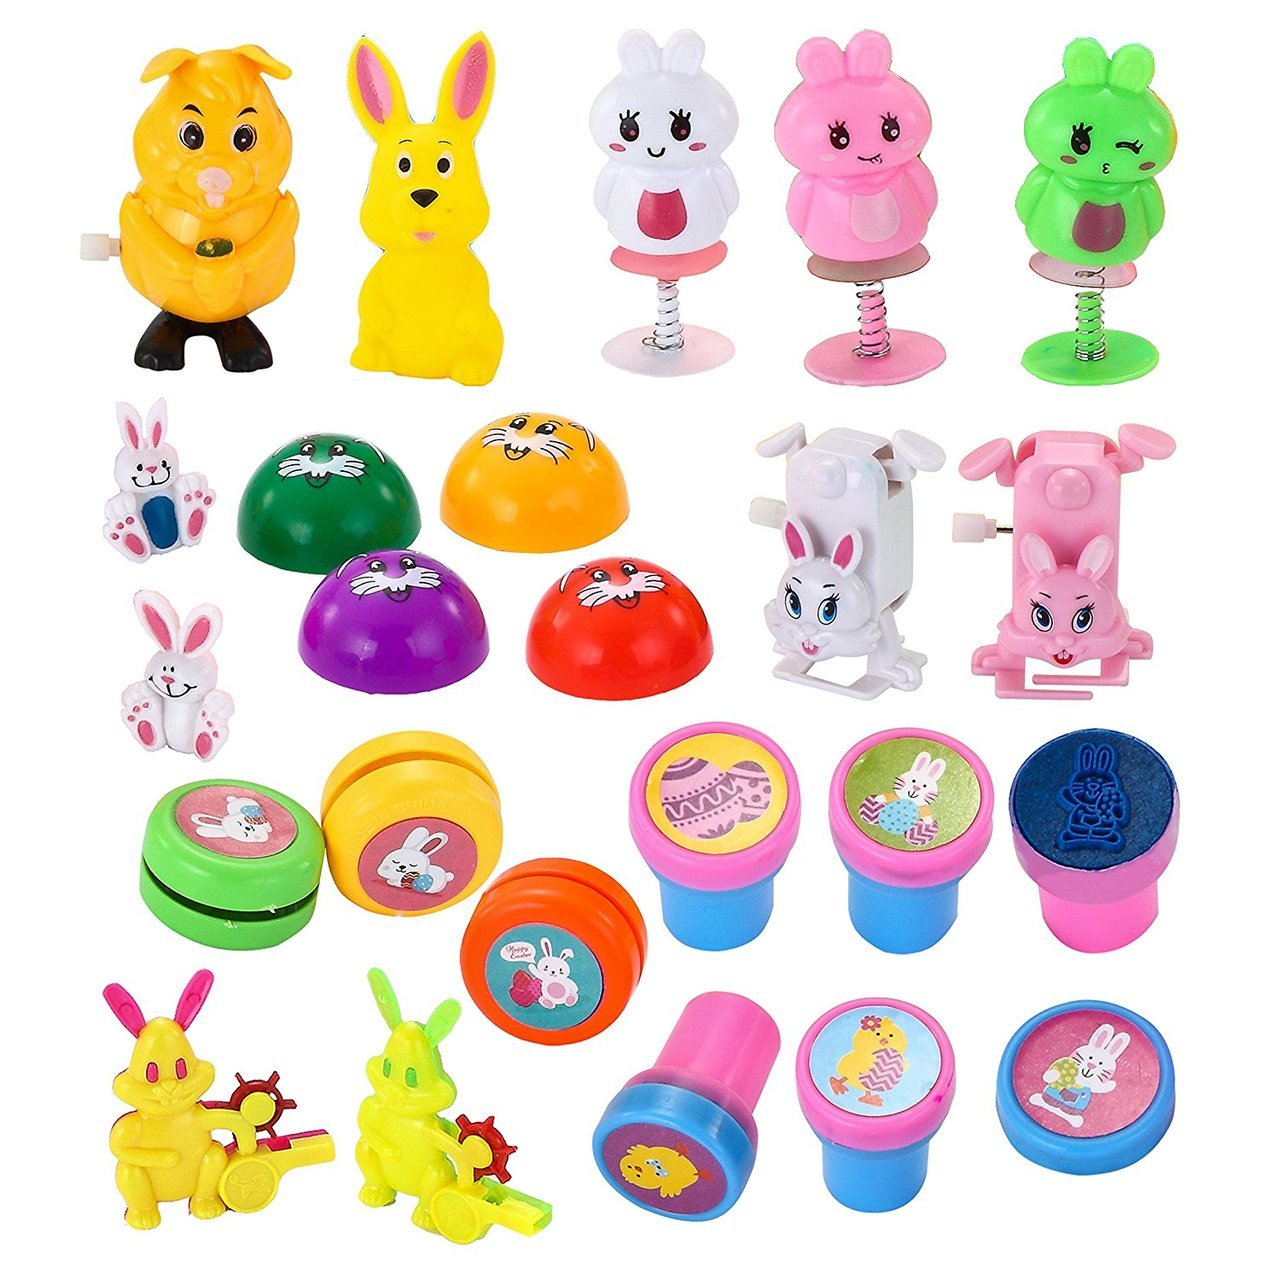 Easter Eggs Pre-Filled with Bunny Toys